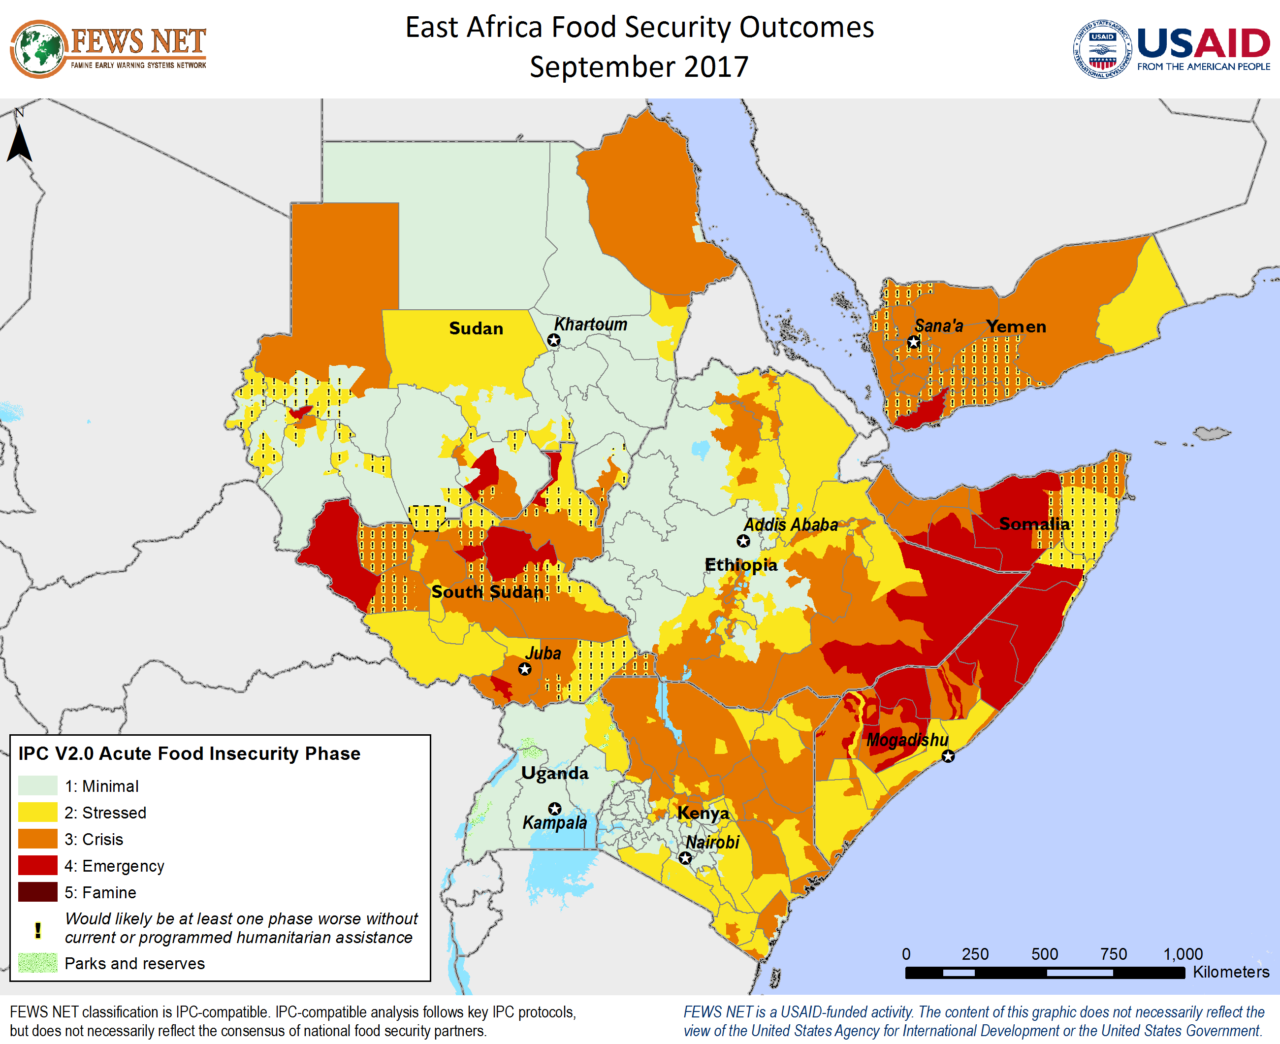 FEWS Net map of food security levels in East Africa as of September, 2017.